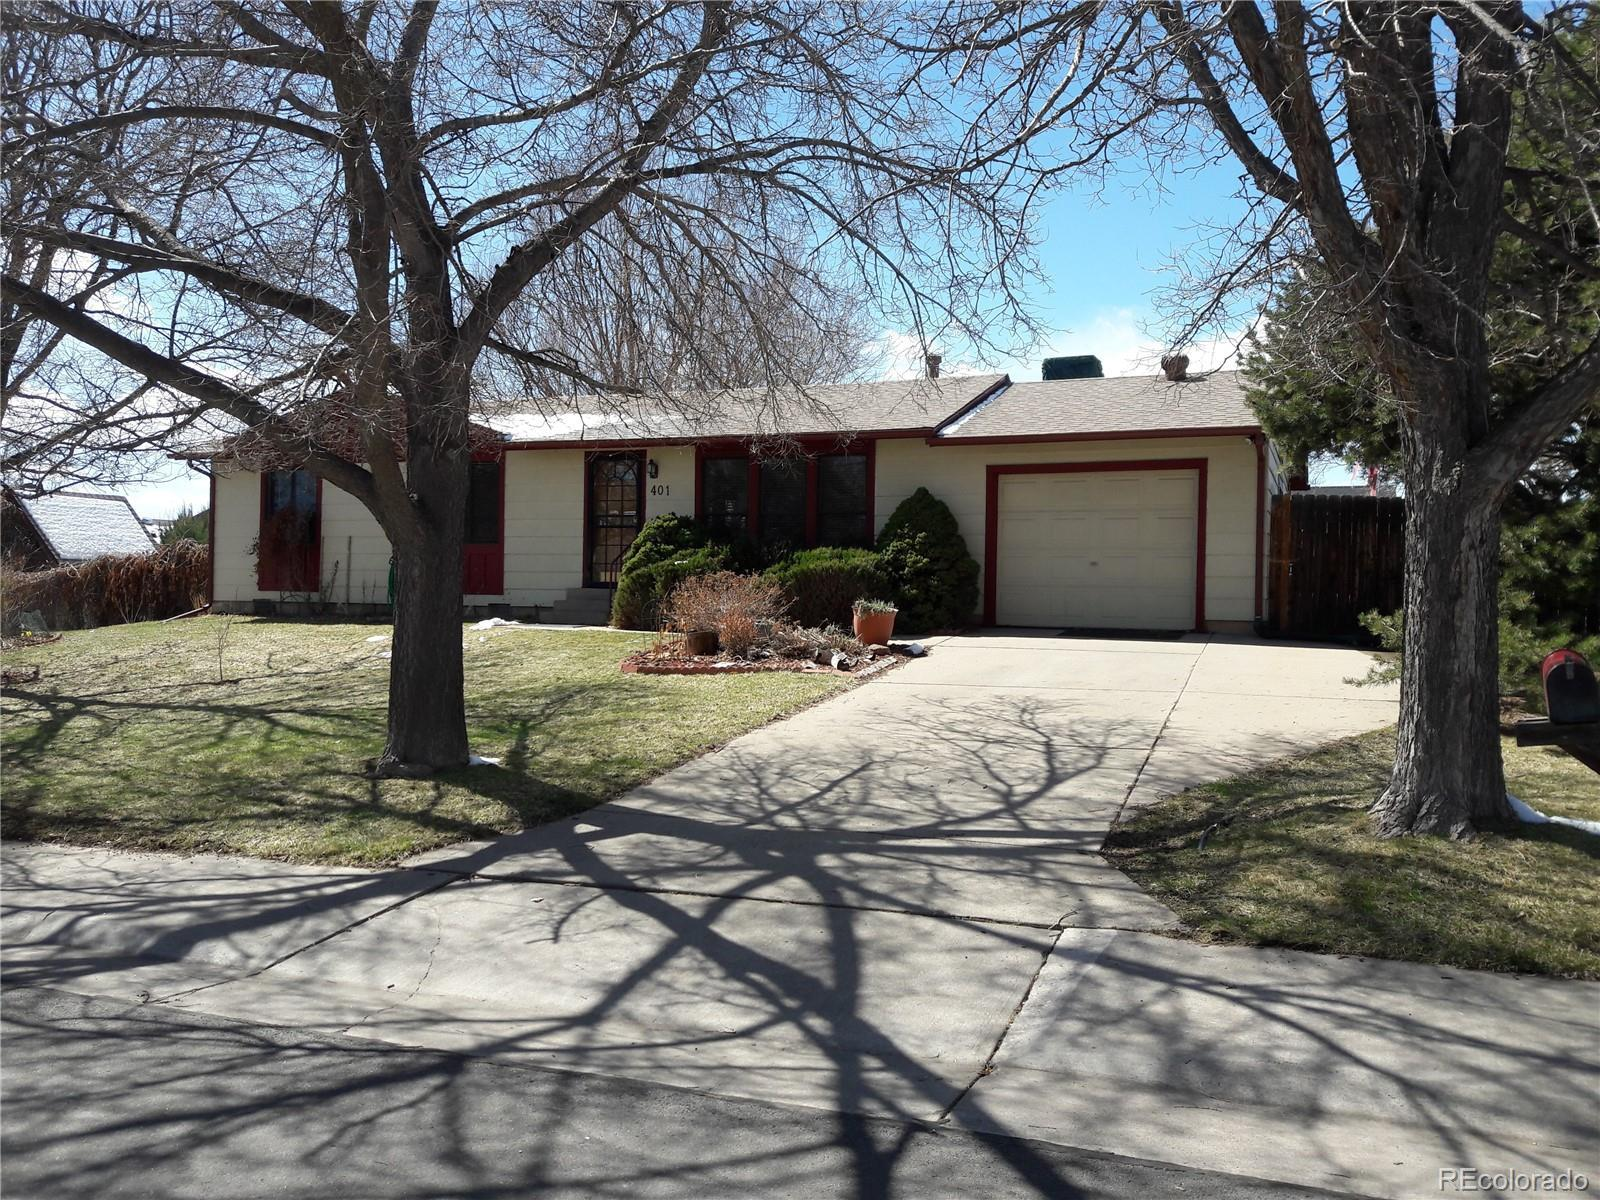 401 S Dover Court, Lakewood, CO 80226 - #: 2921261